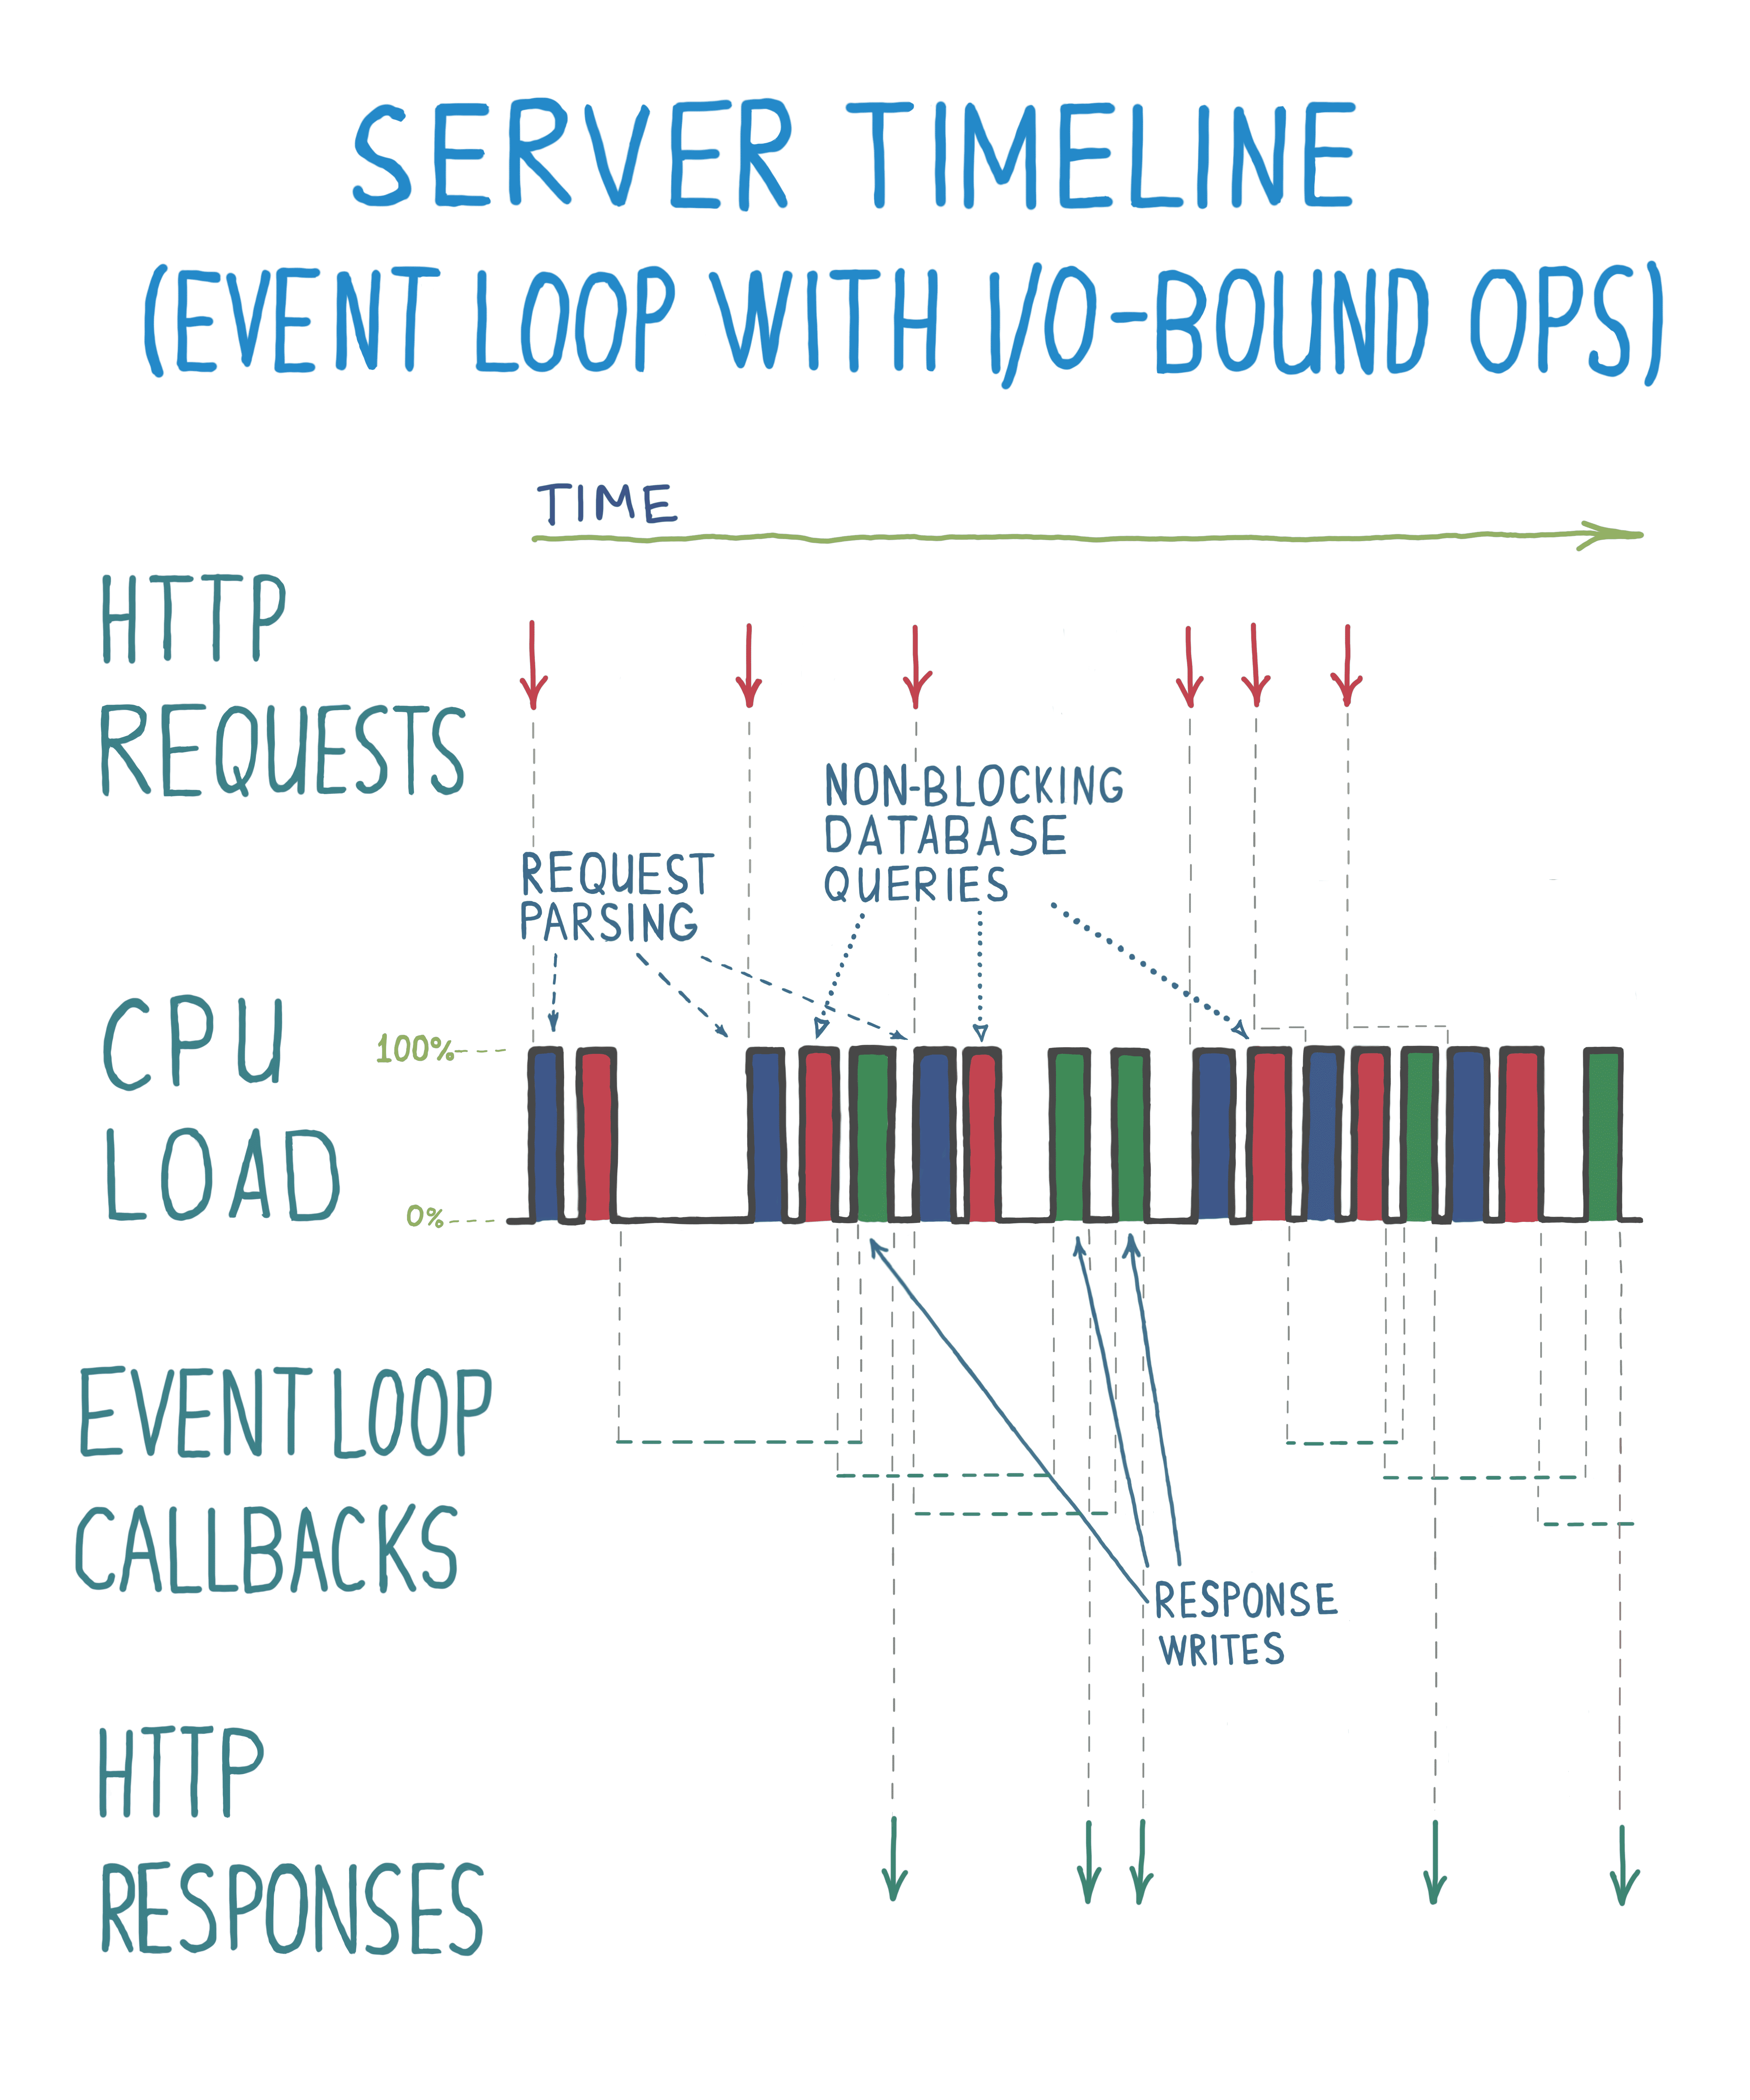 Event loops, building smooth UIs and handling high server